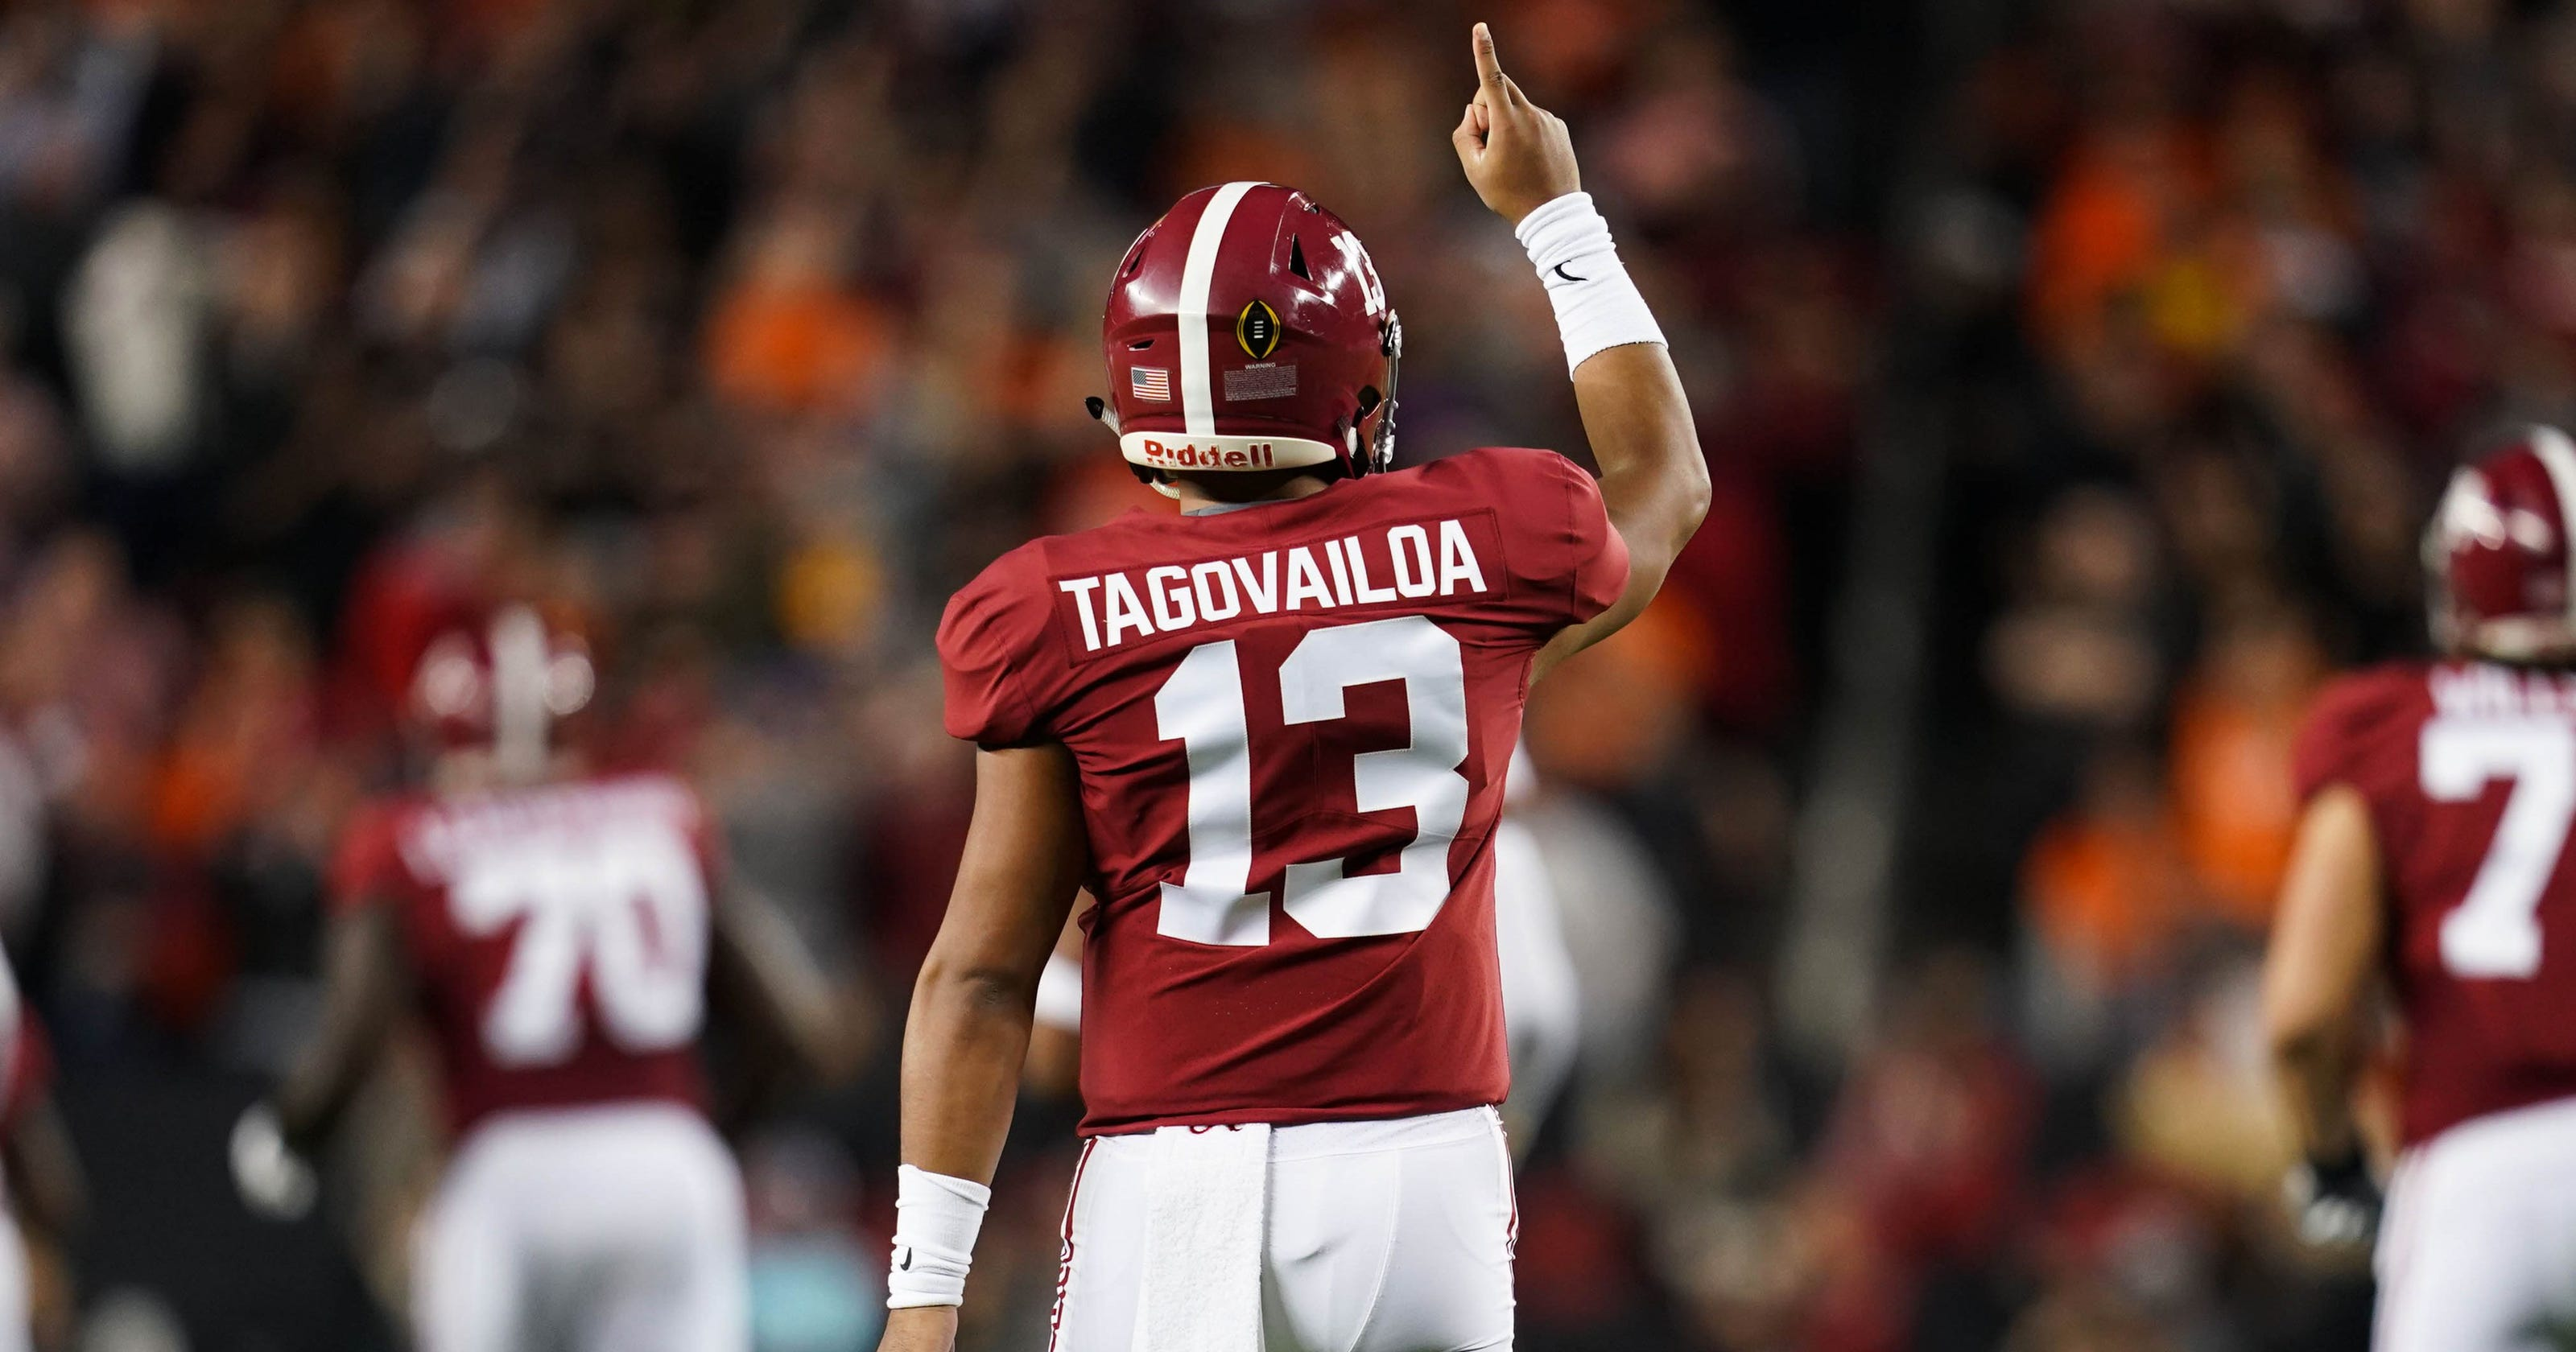 Tagovailoa 2020 Alabama Tua Bears Chicago Draft: QB